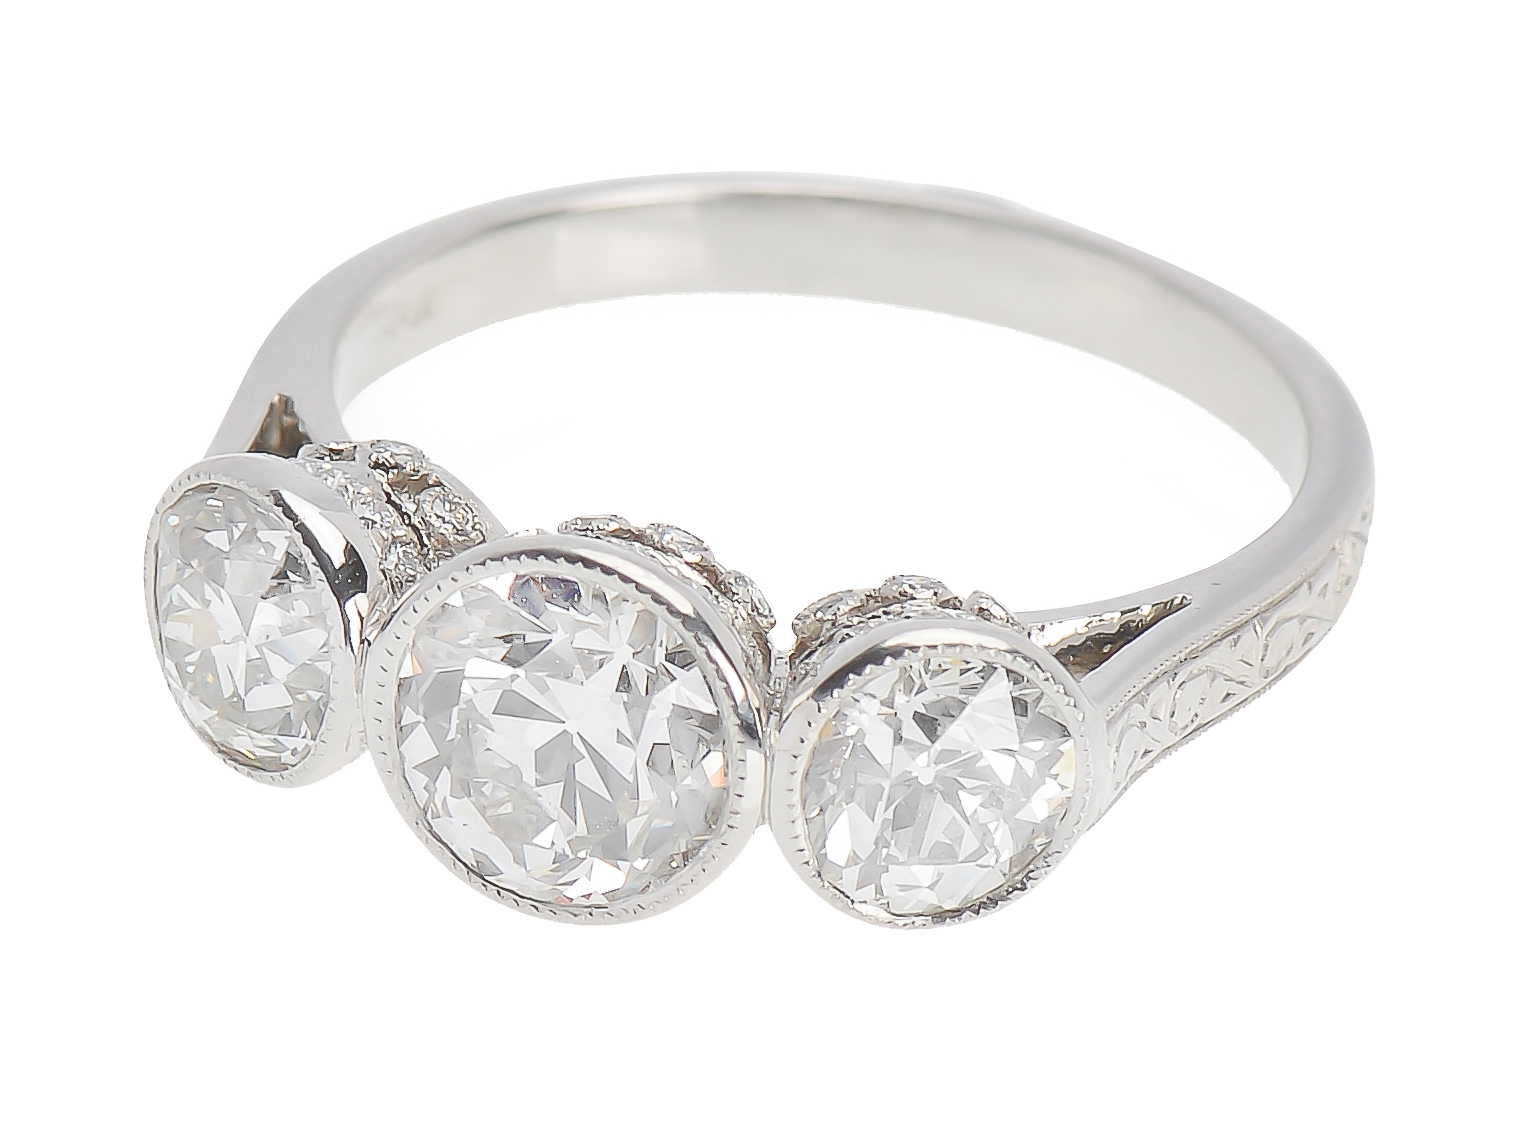 Painstaking 1.20 Ct Round Diamond Wedding Party Bridal Ring Band Set 14k White Gold Size 4 Factory Direct Selling Price Engagement & Wedding